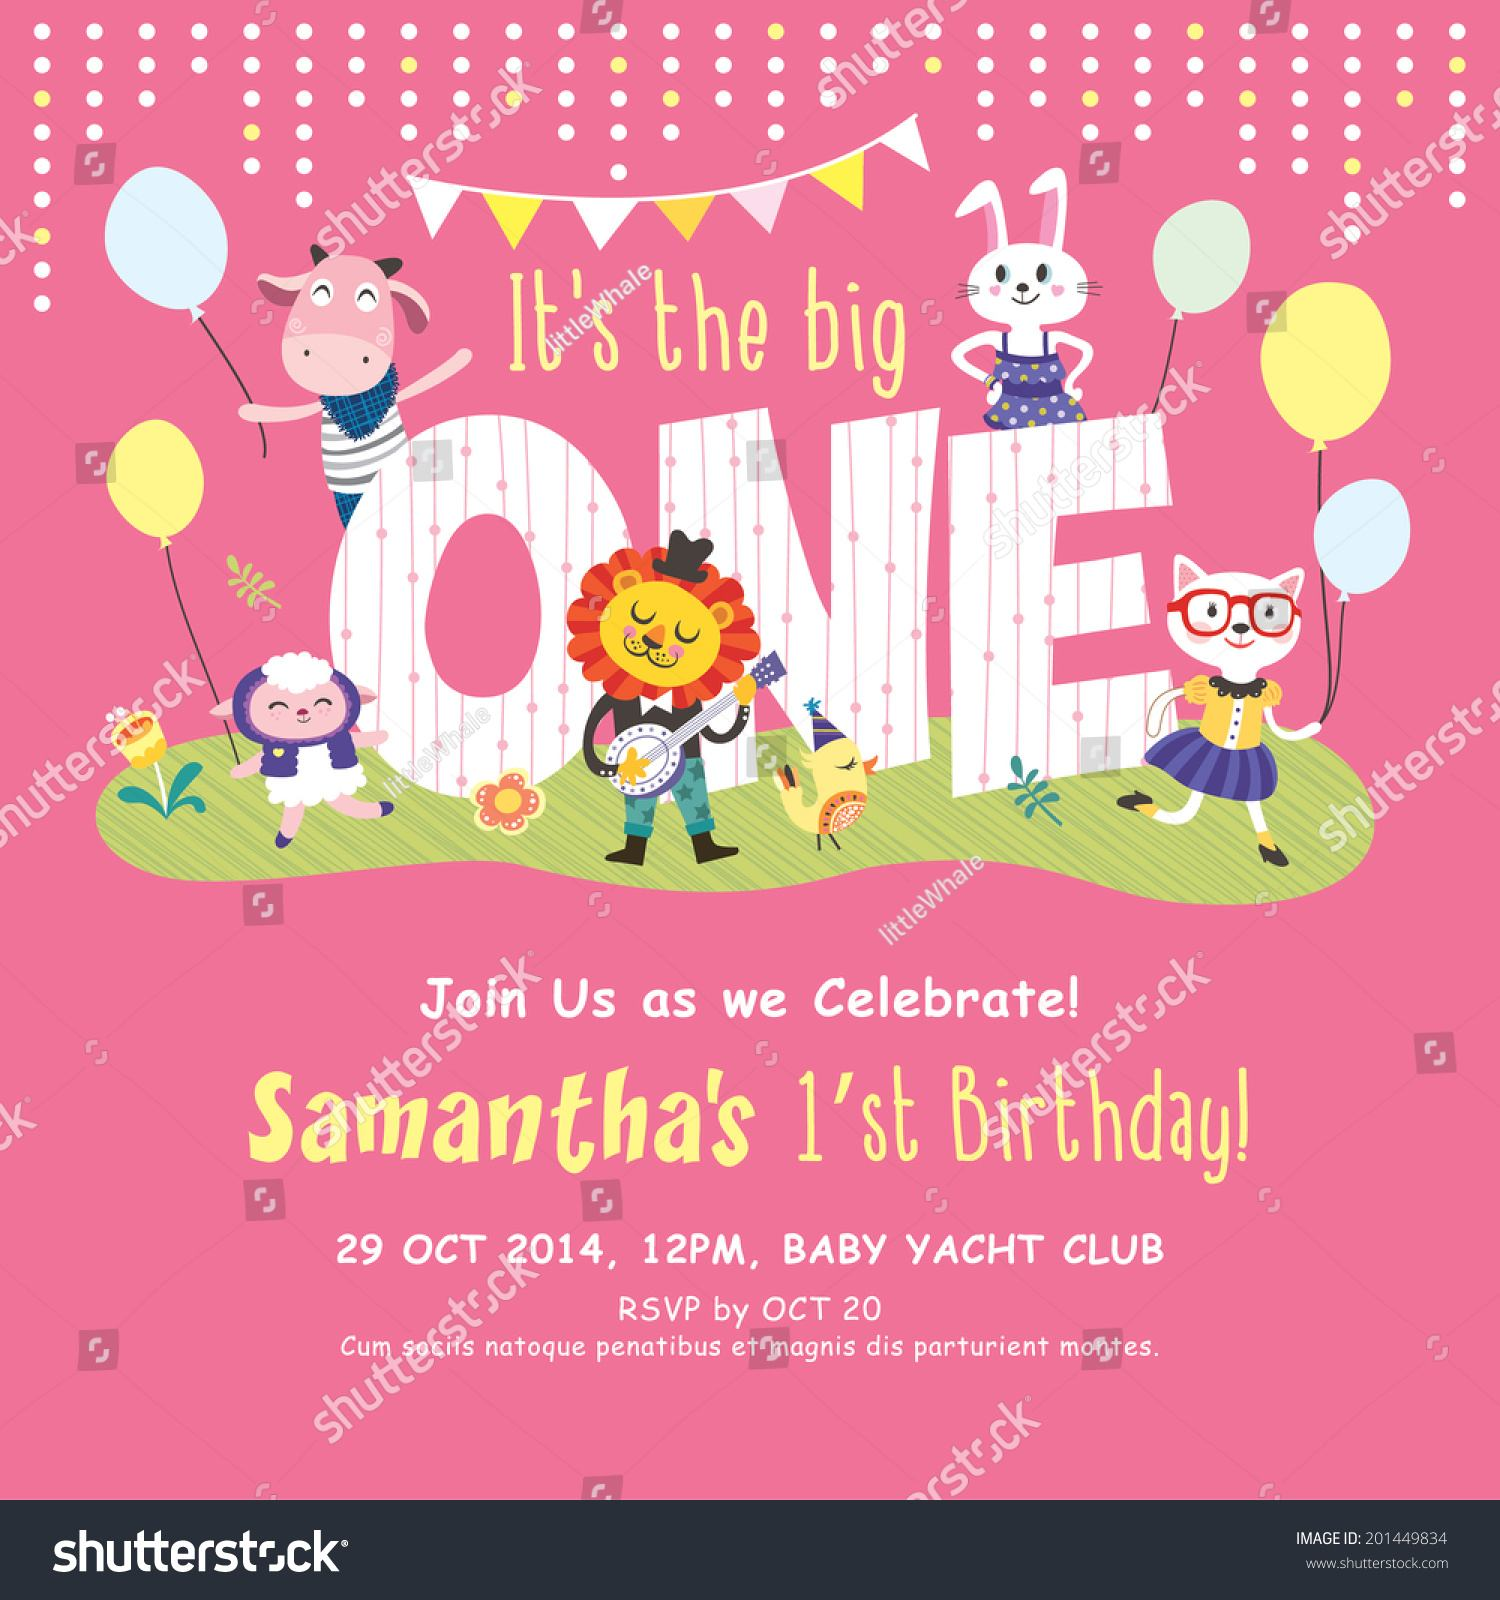 pictures of birthday invitation cards ; birthday-party-invitation-card-nice-1st-birthday-party-invitation-card-stock-vector-of-birthday-party-invitation-card